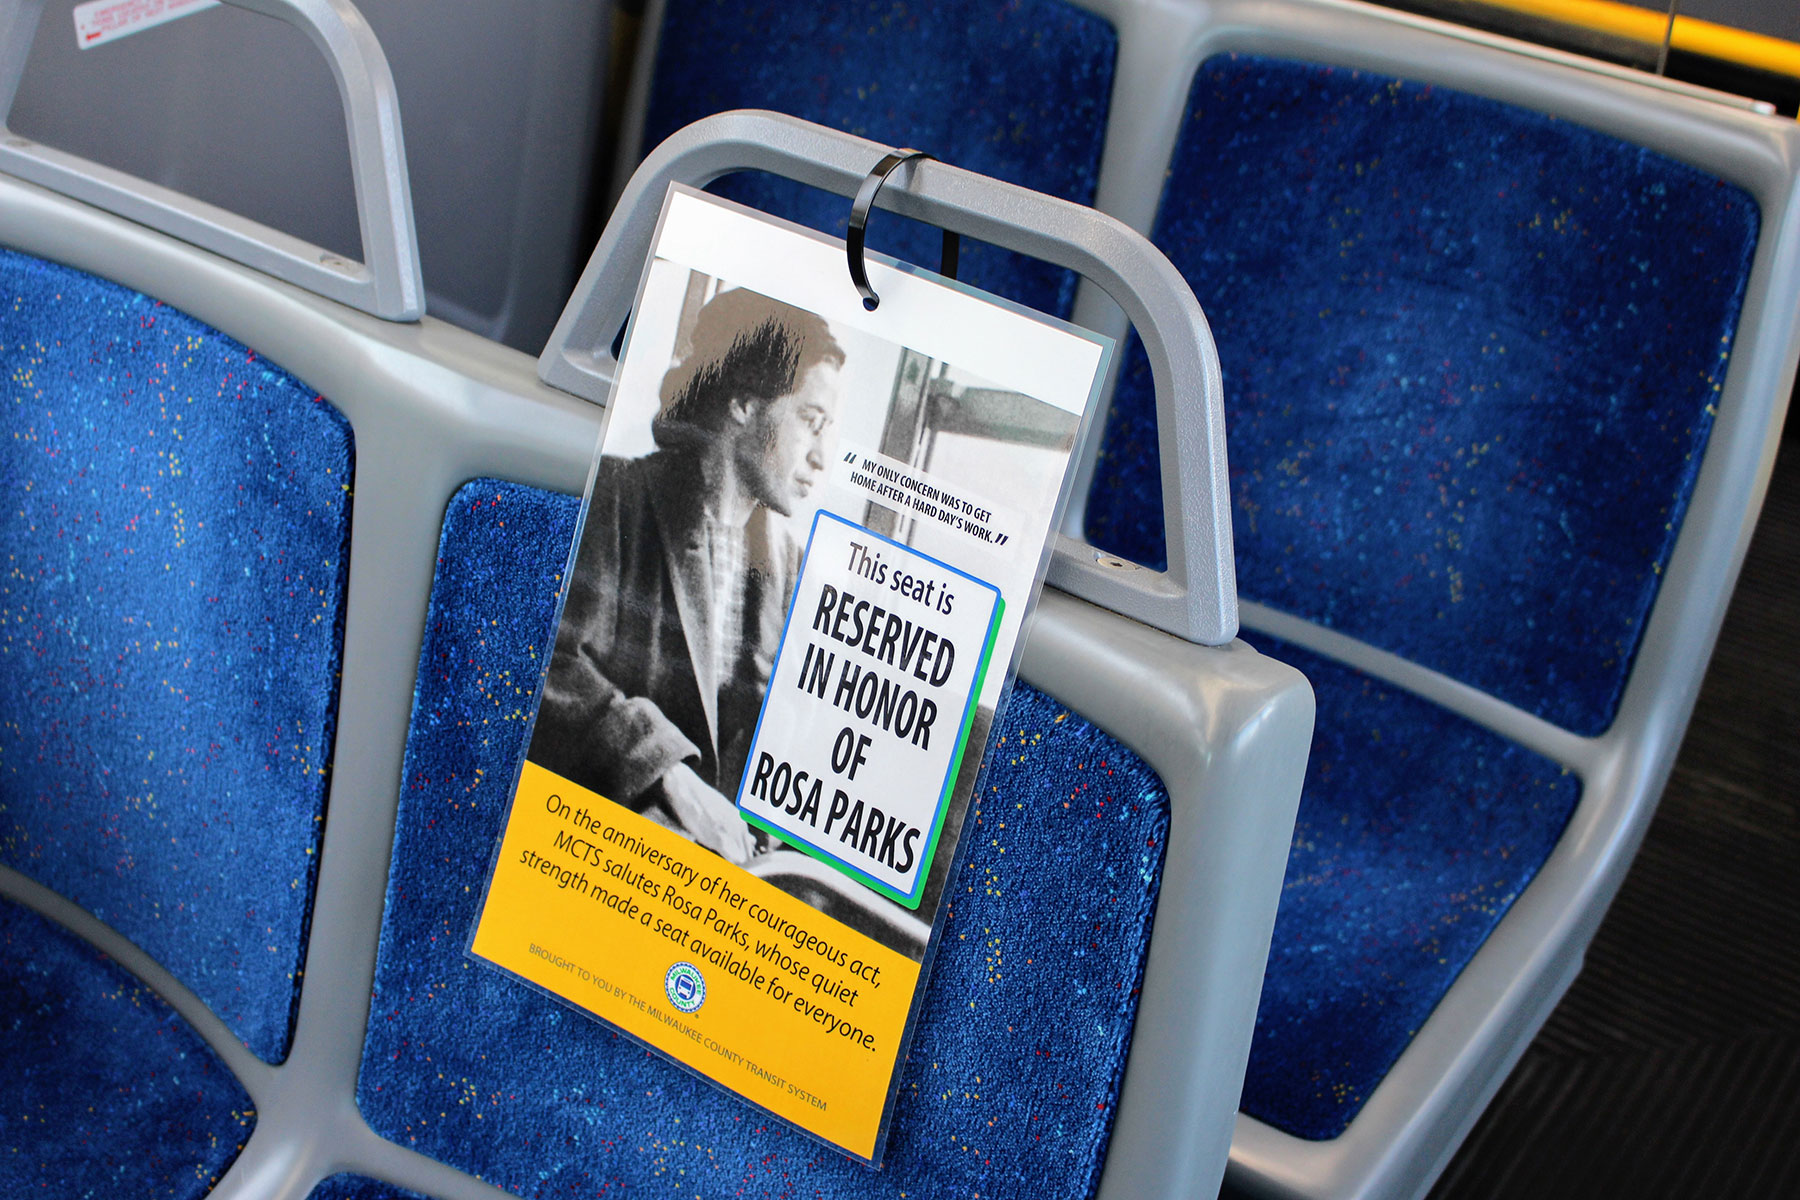 In Rosa Rosa Parks Honored With Reserved Bus Seat Tribute The Milwaukee